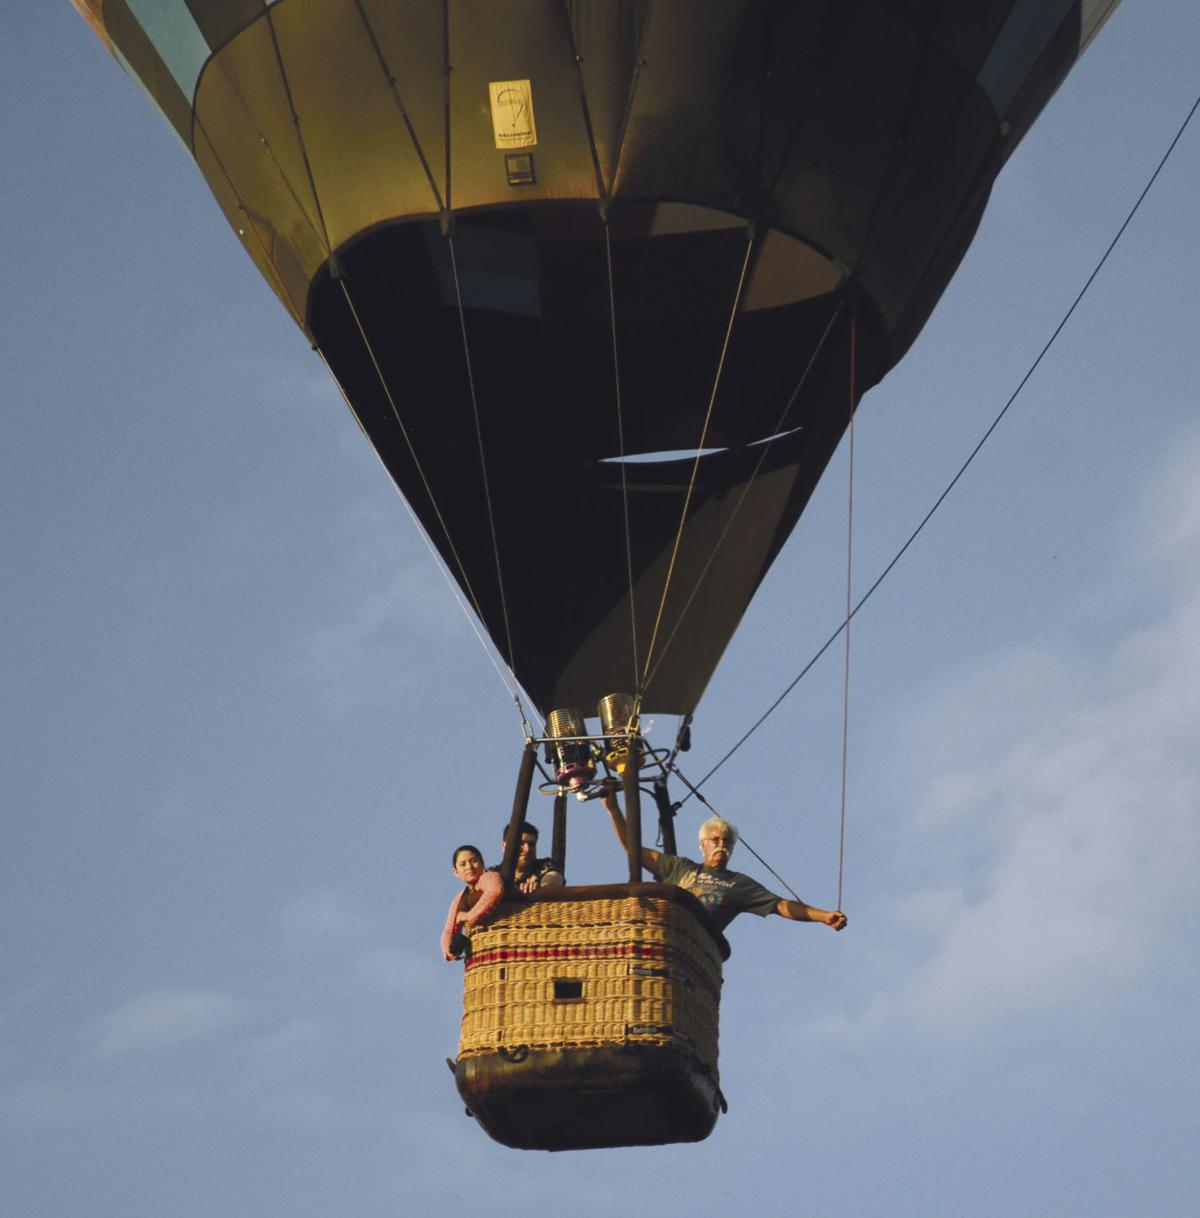 Balloon ride leads to proposal